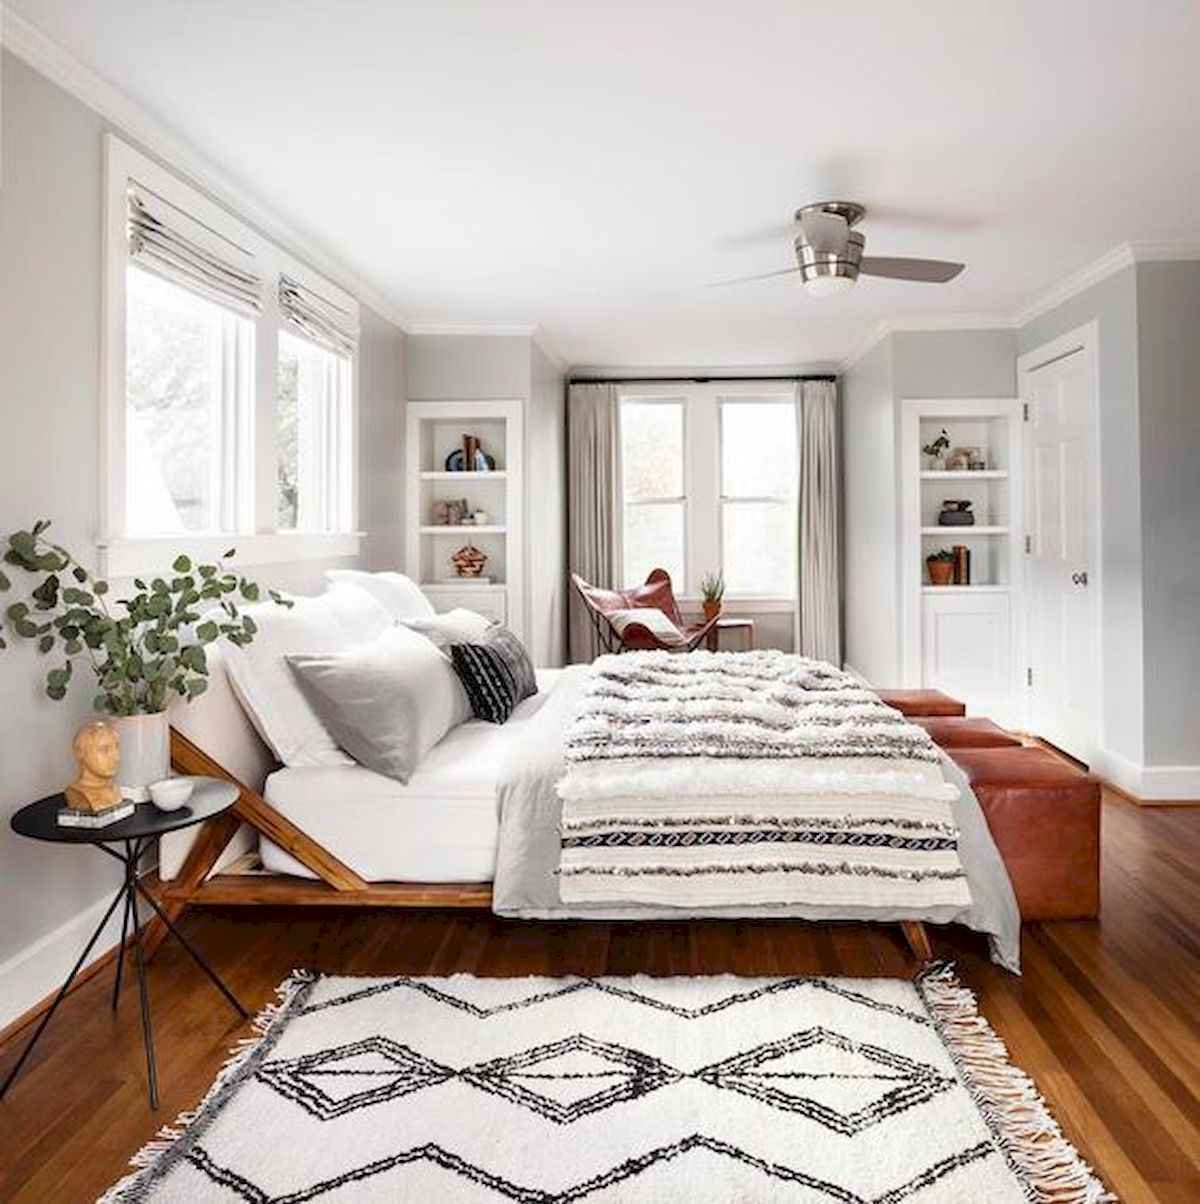 25 Best Bedroom Rug Ideas And Design